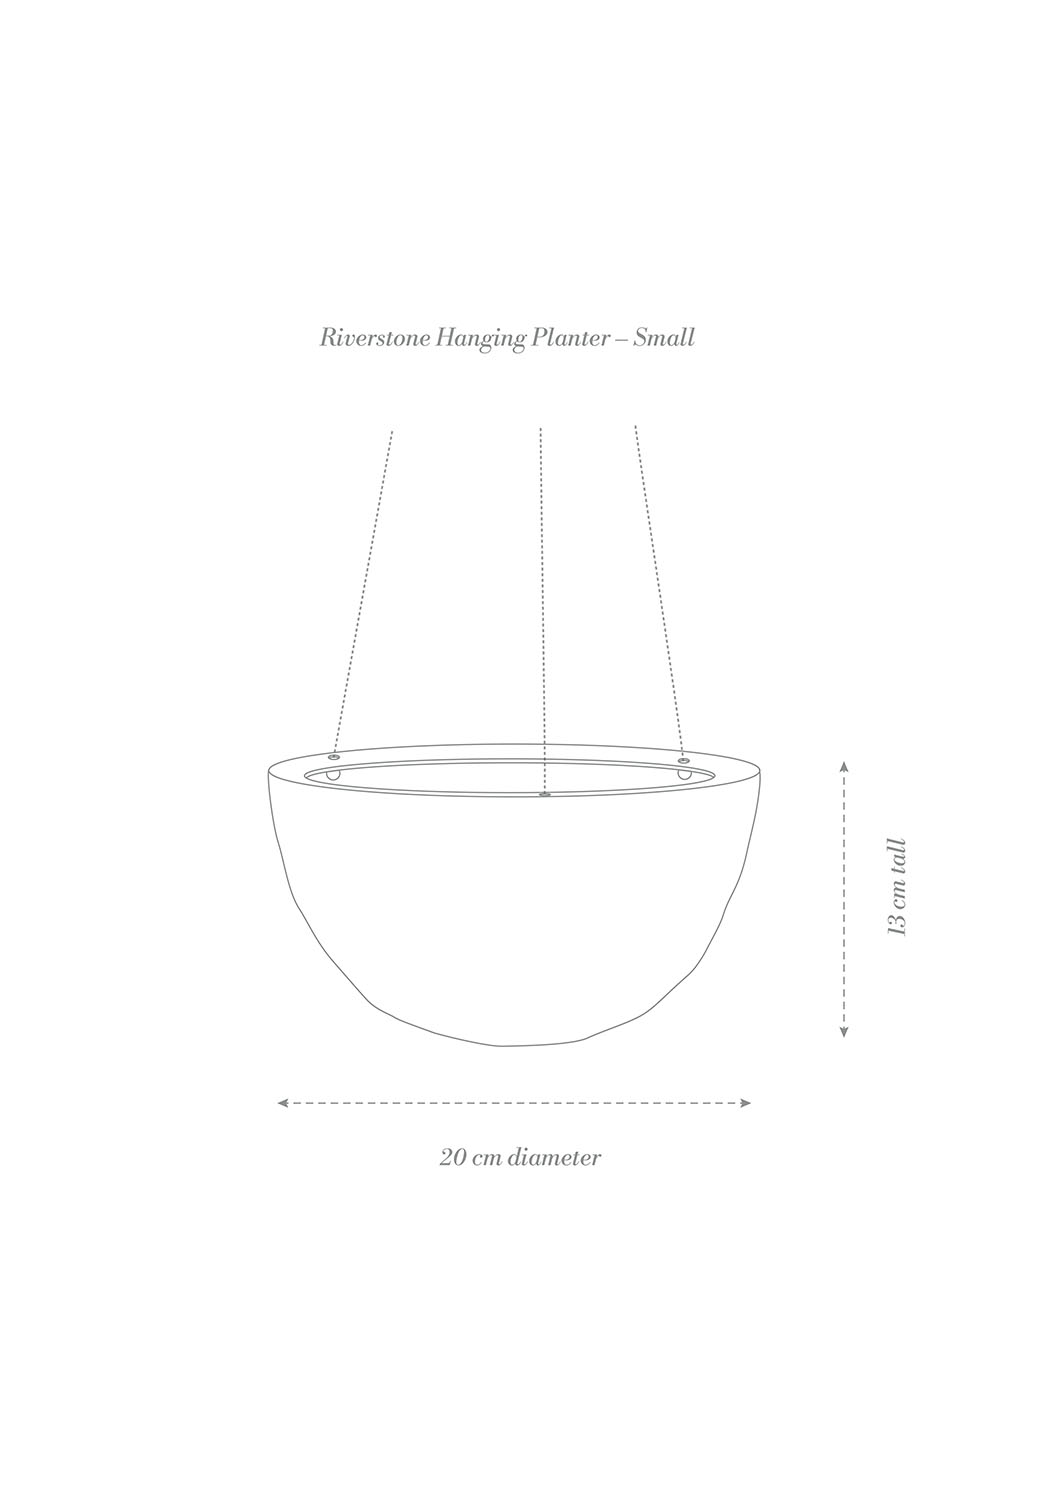 Riverstone Hanging Planter Small Product Diagram